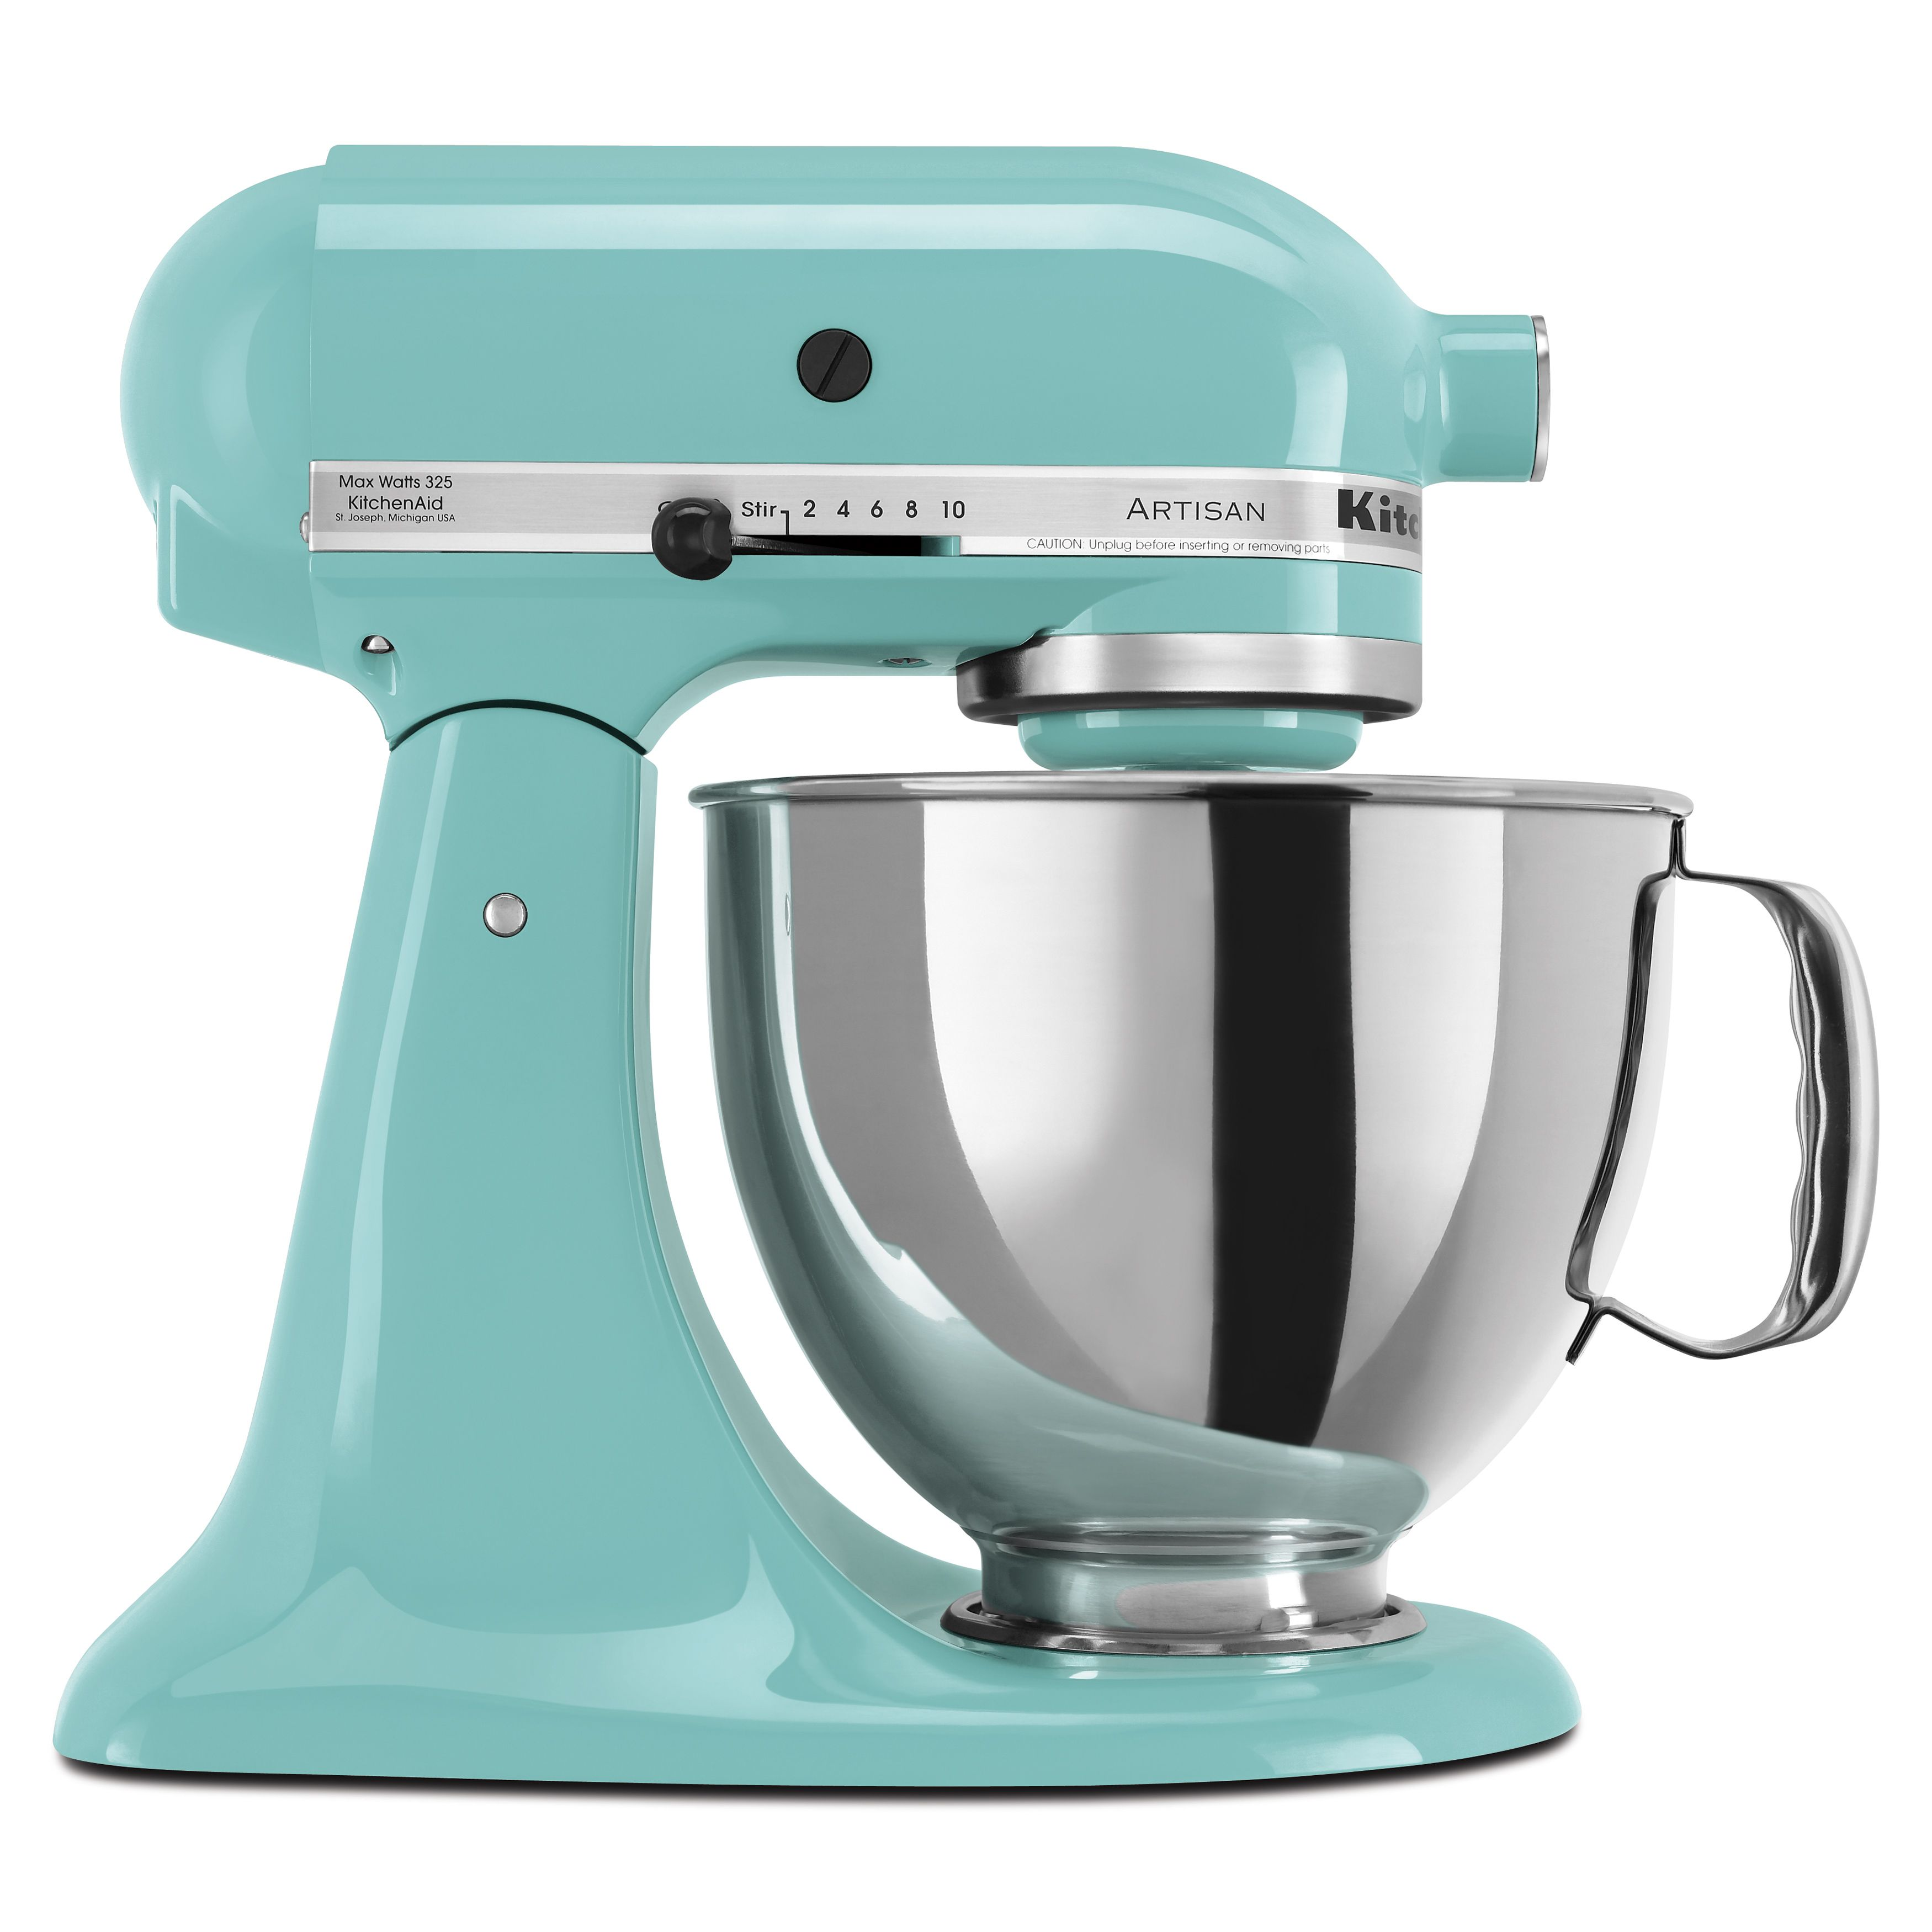 This retro Kitchenaid stand mixer with variable speeds and mixing ...